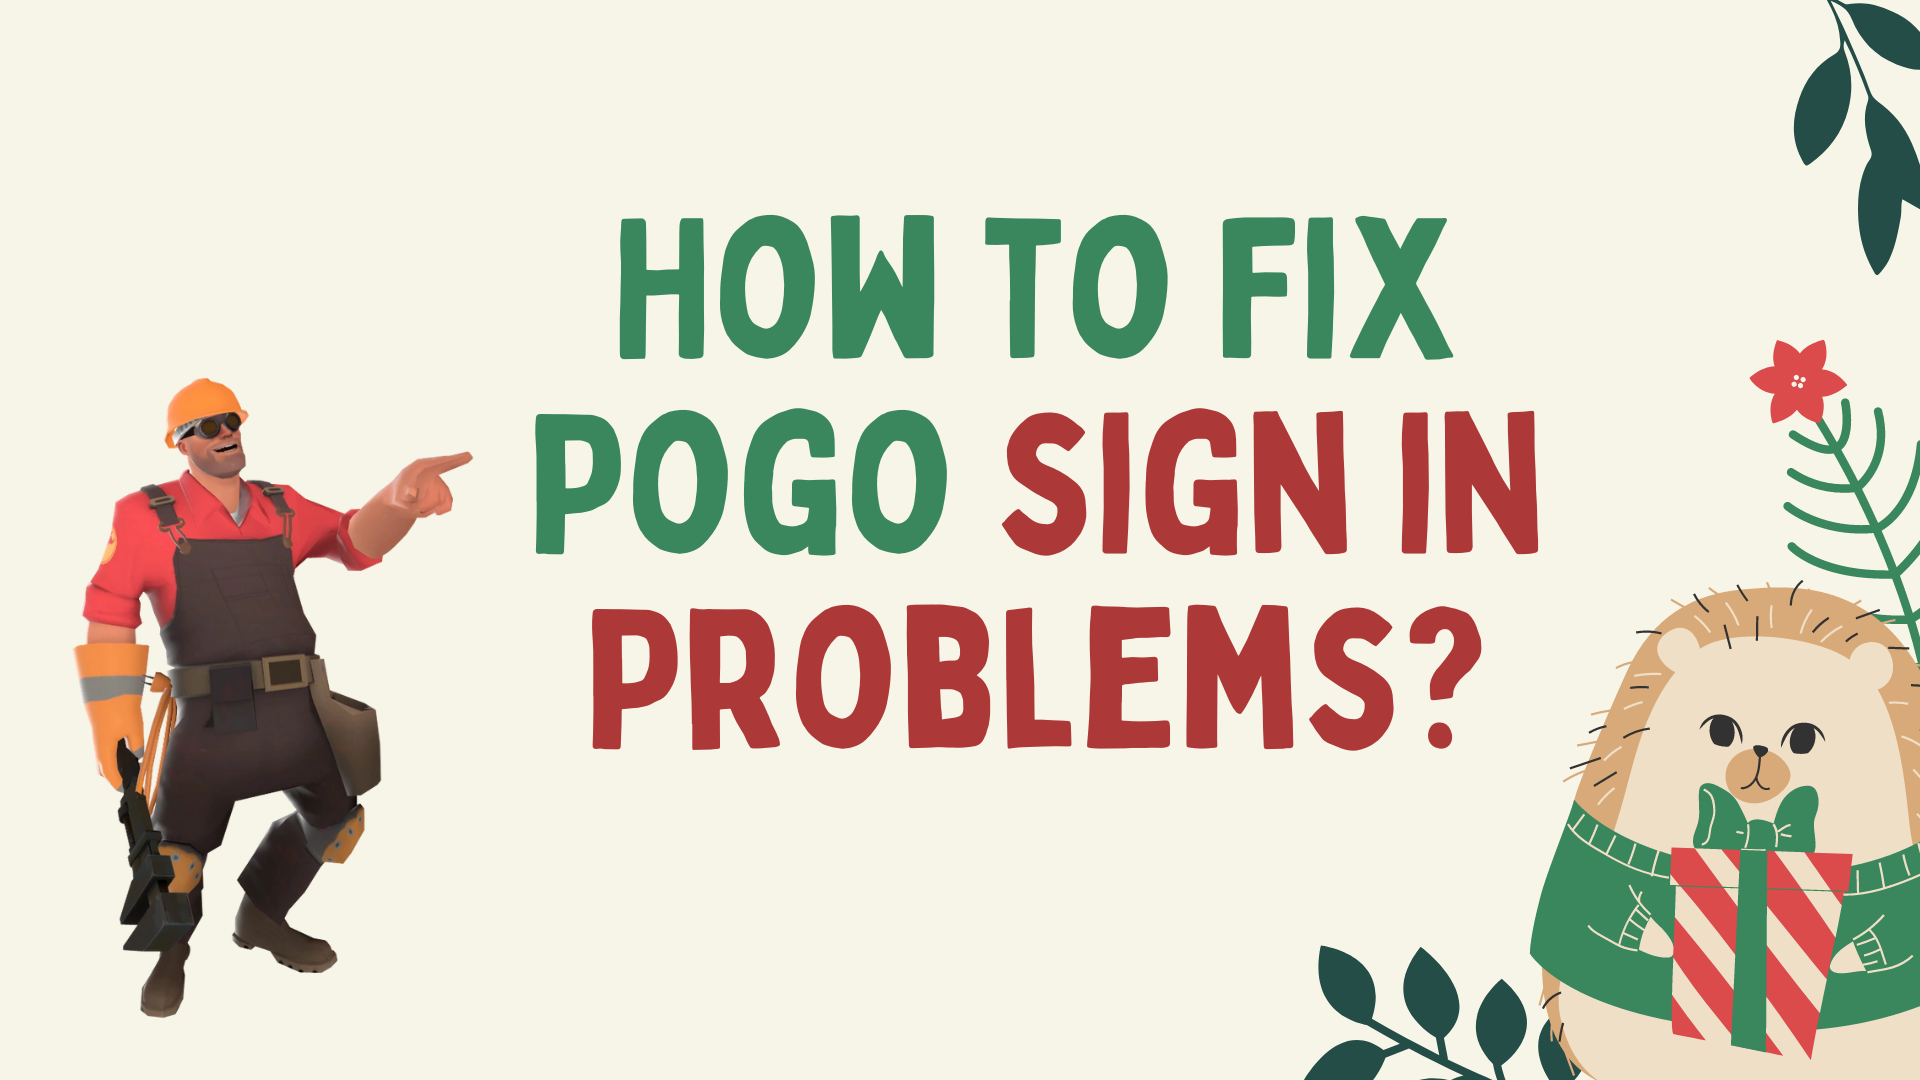 How to Fix Pogo sign in Problems?